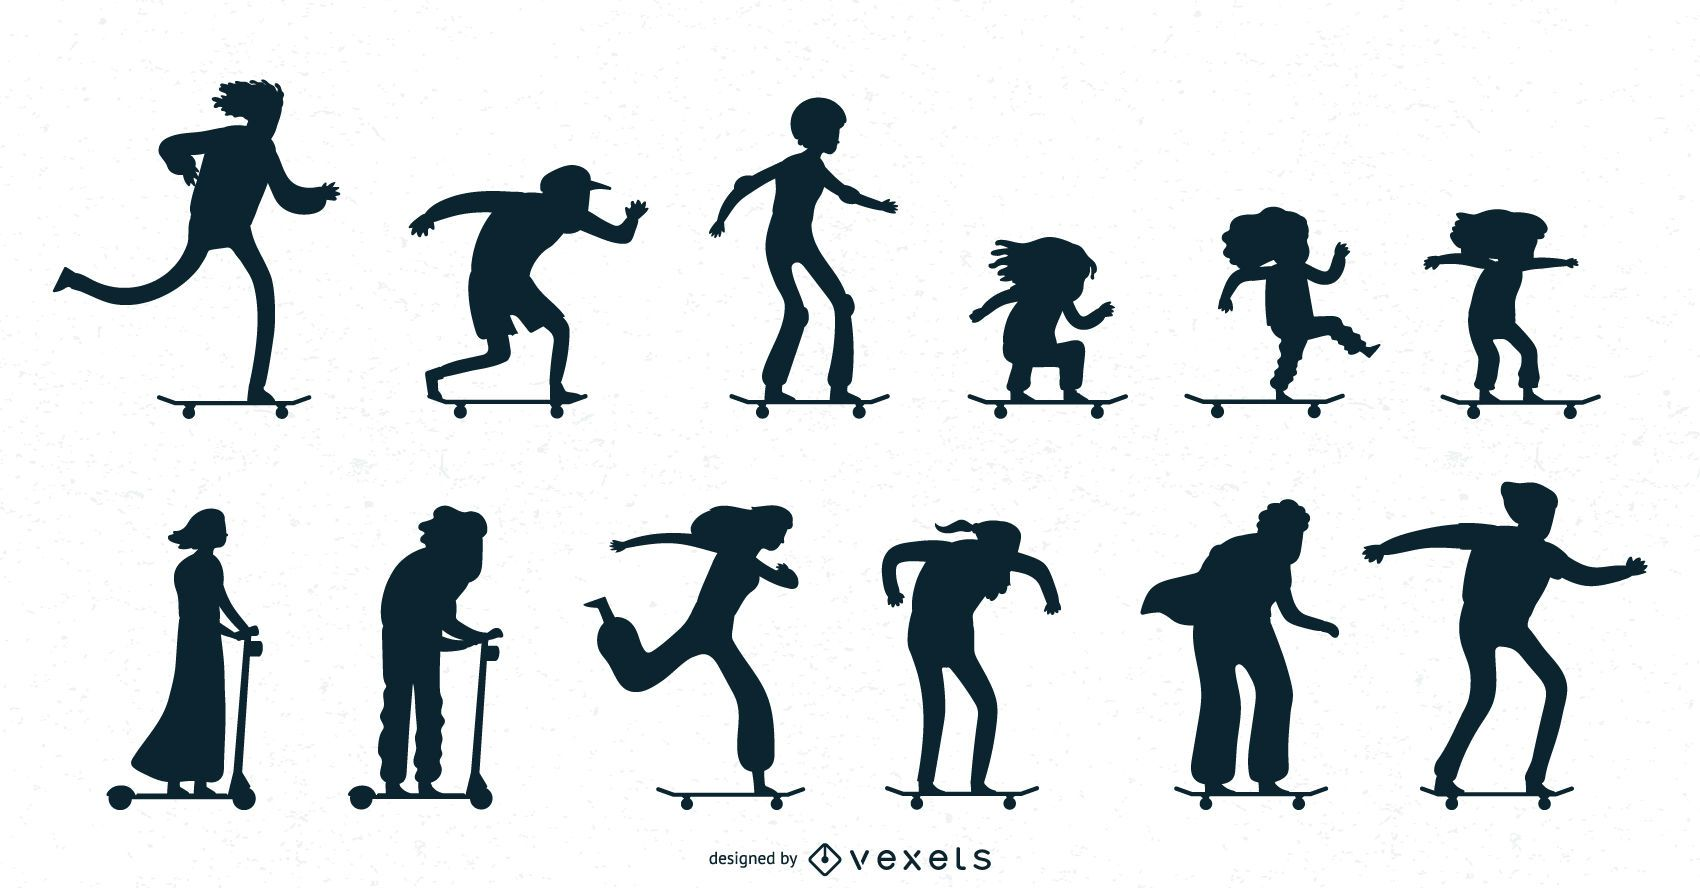 Skating silhouettes collection